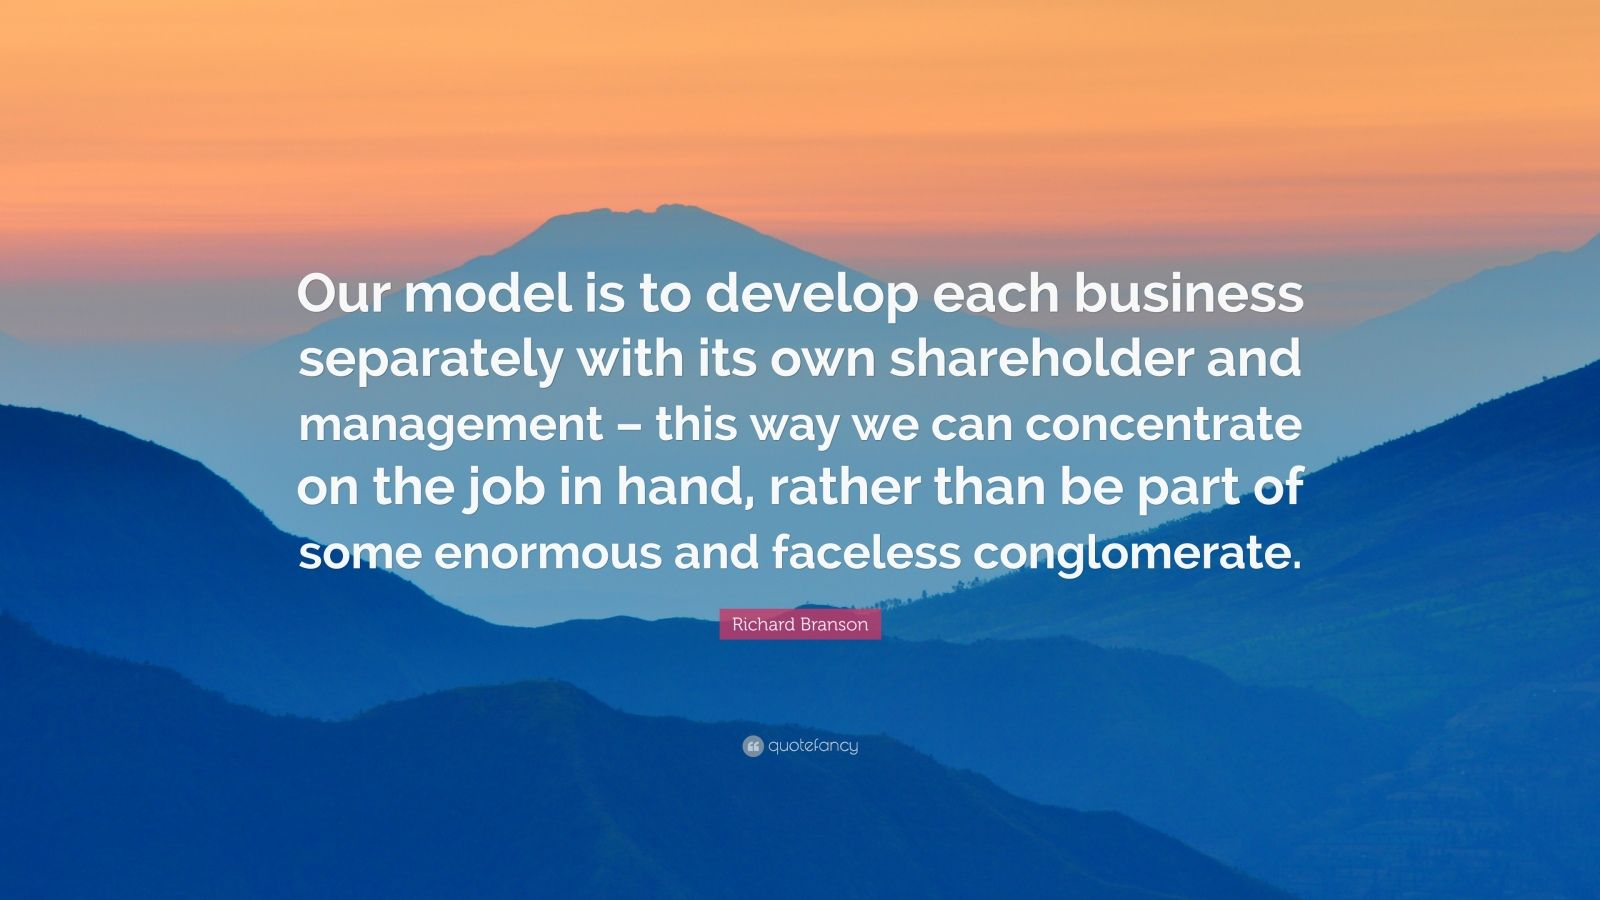 """Richard Branson Quote: """"Our model is to develop each business separately with its own shareholder and management – this way we can concentrate on the job in hand, rather than be part of some enormous and faceless conglomerate."""""""